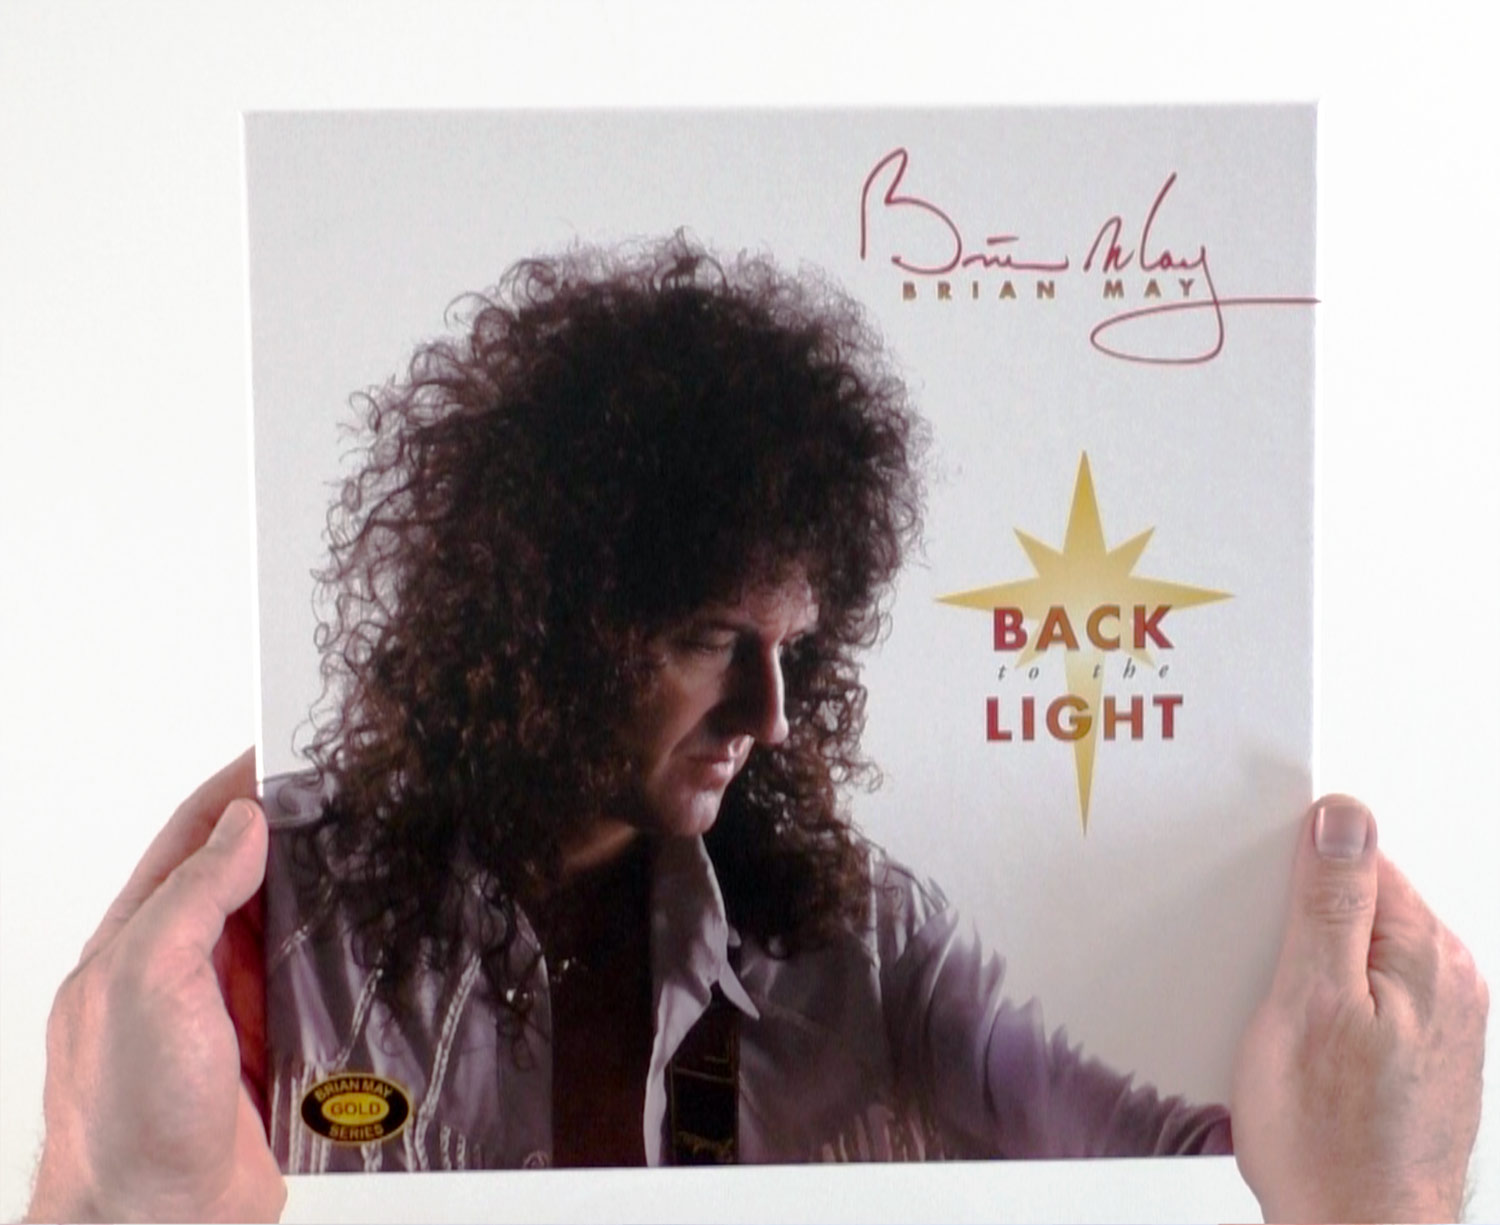 Brian May / Back to the Light unboxing video